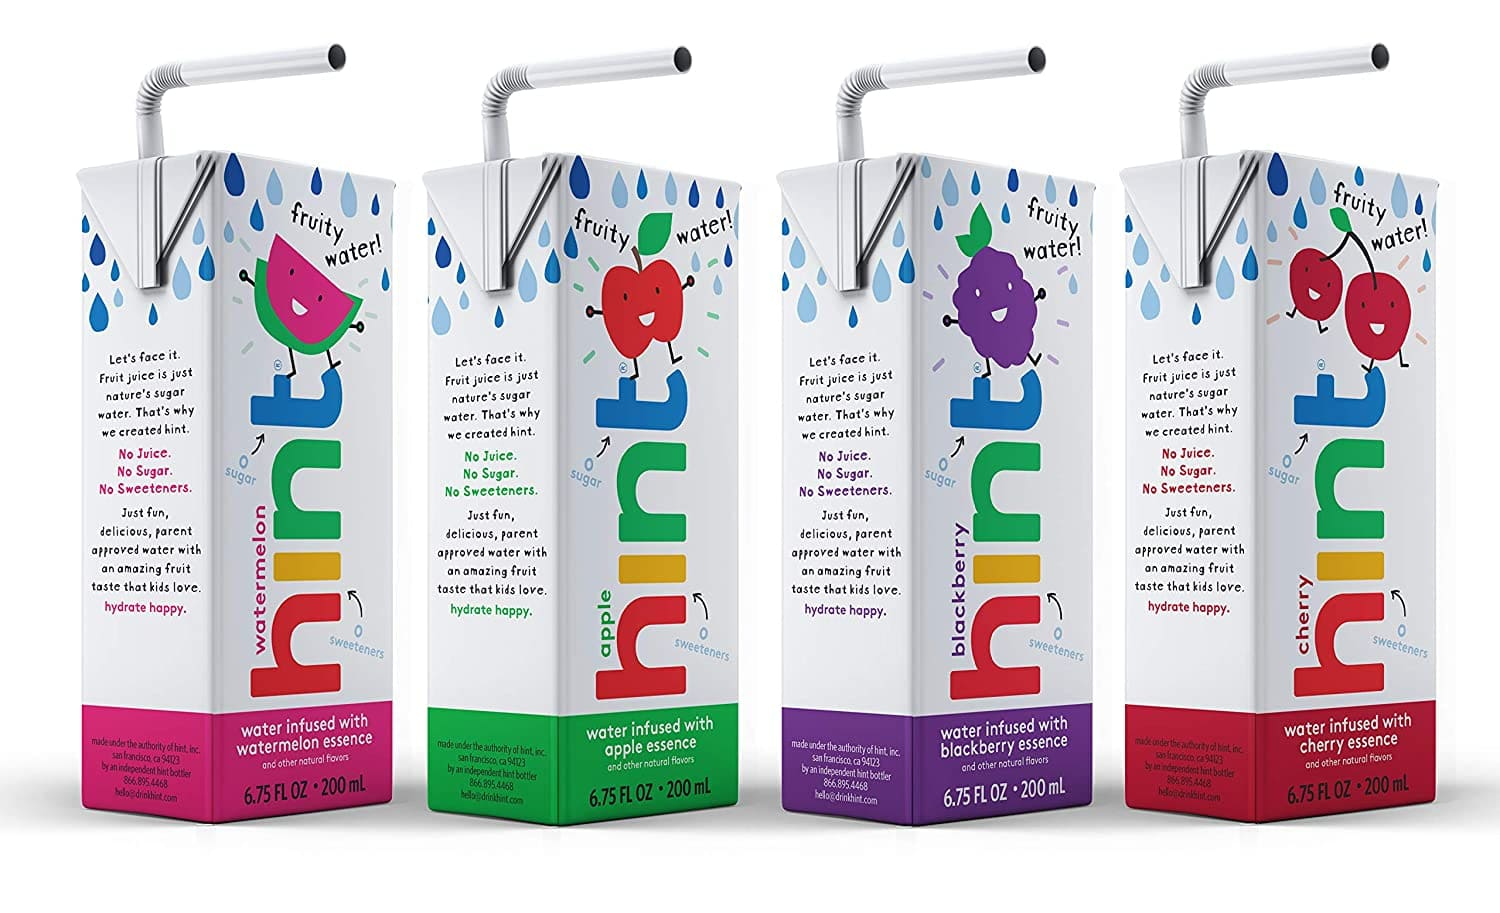 32-Pack 6.75-Oz Hint Kids Water Variety Pack $9.49 w/S&S + Free Shipping w/ Prime or on orders over $25